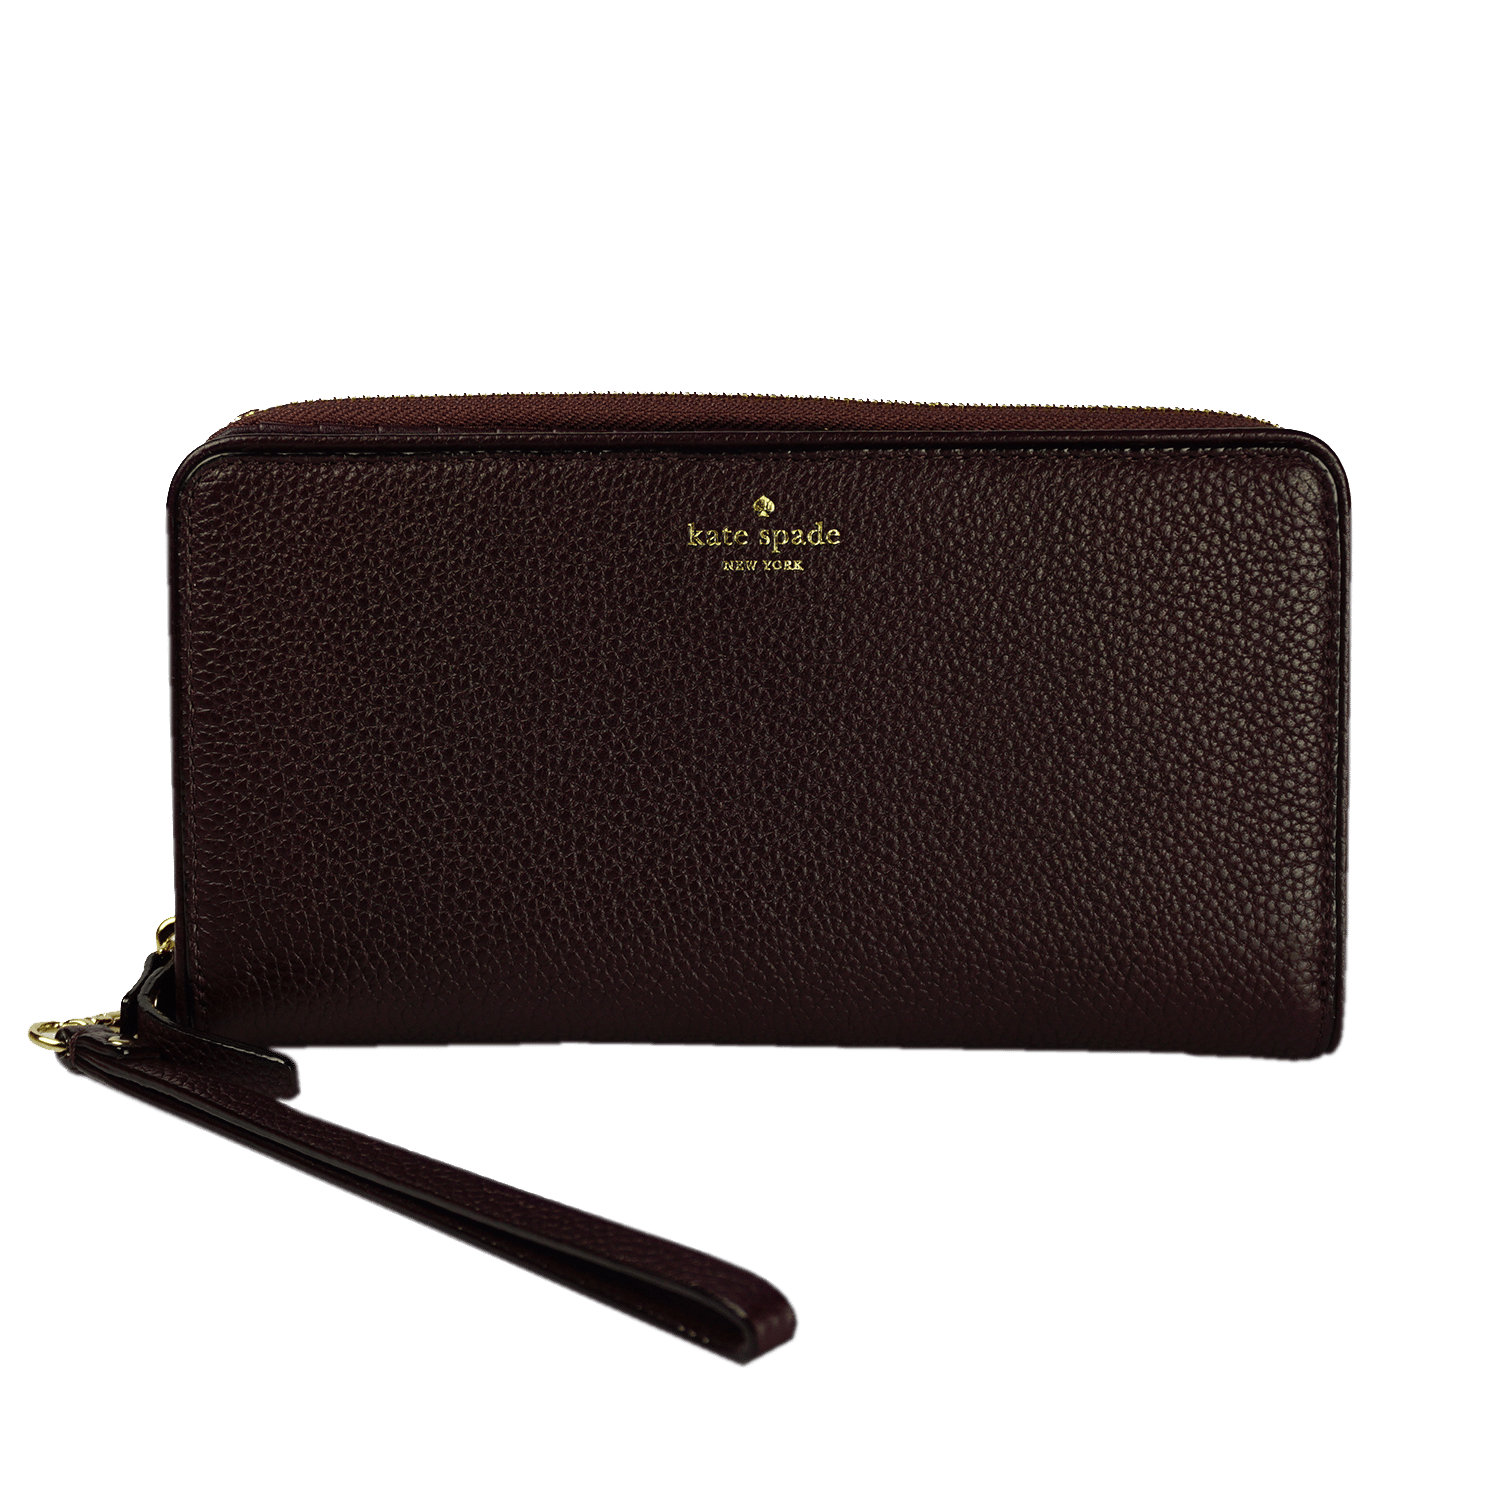 Kate spade wallet png. Brigitta black ifmal warehouse